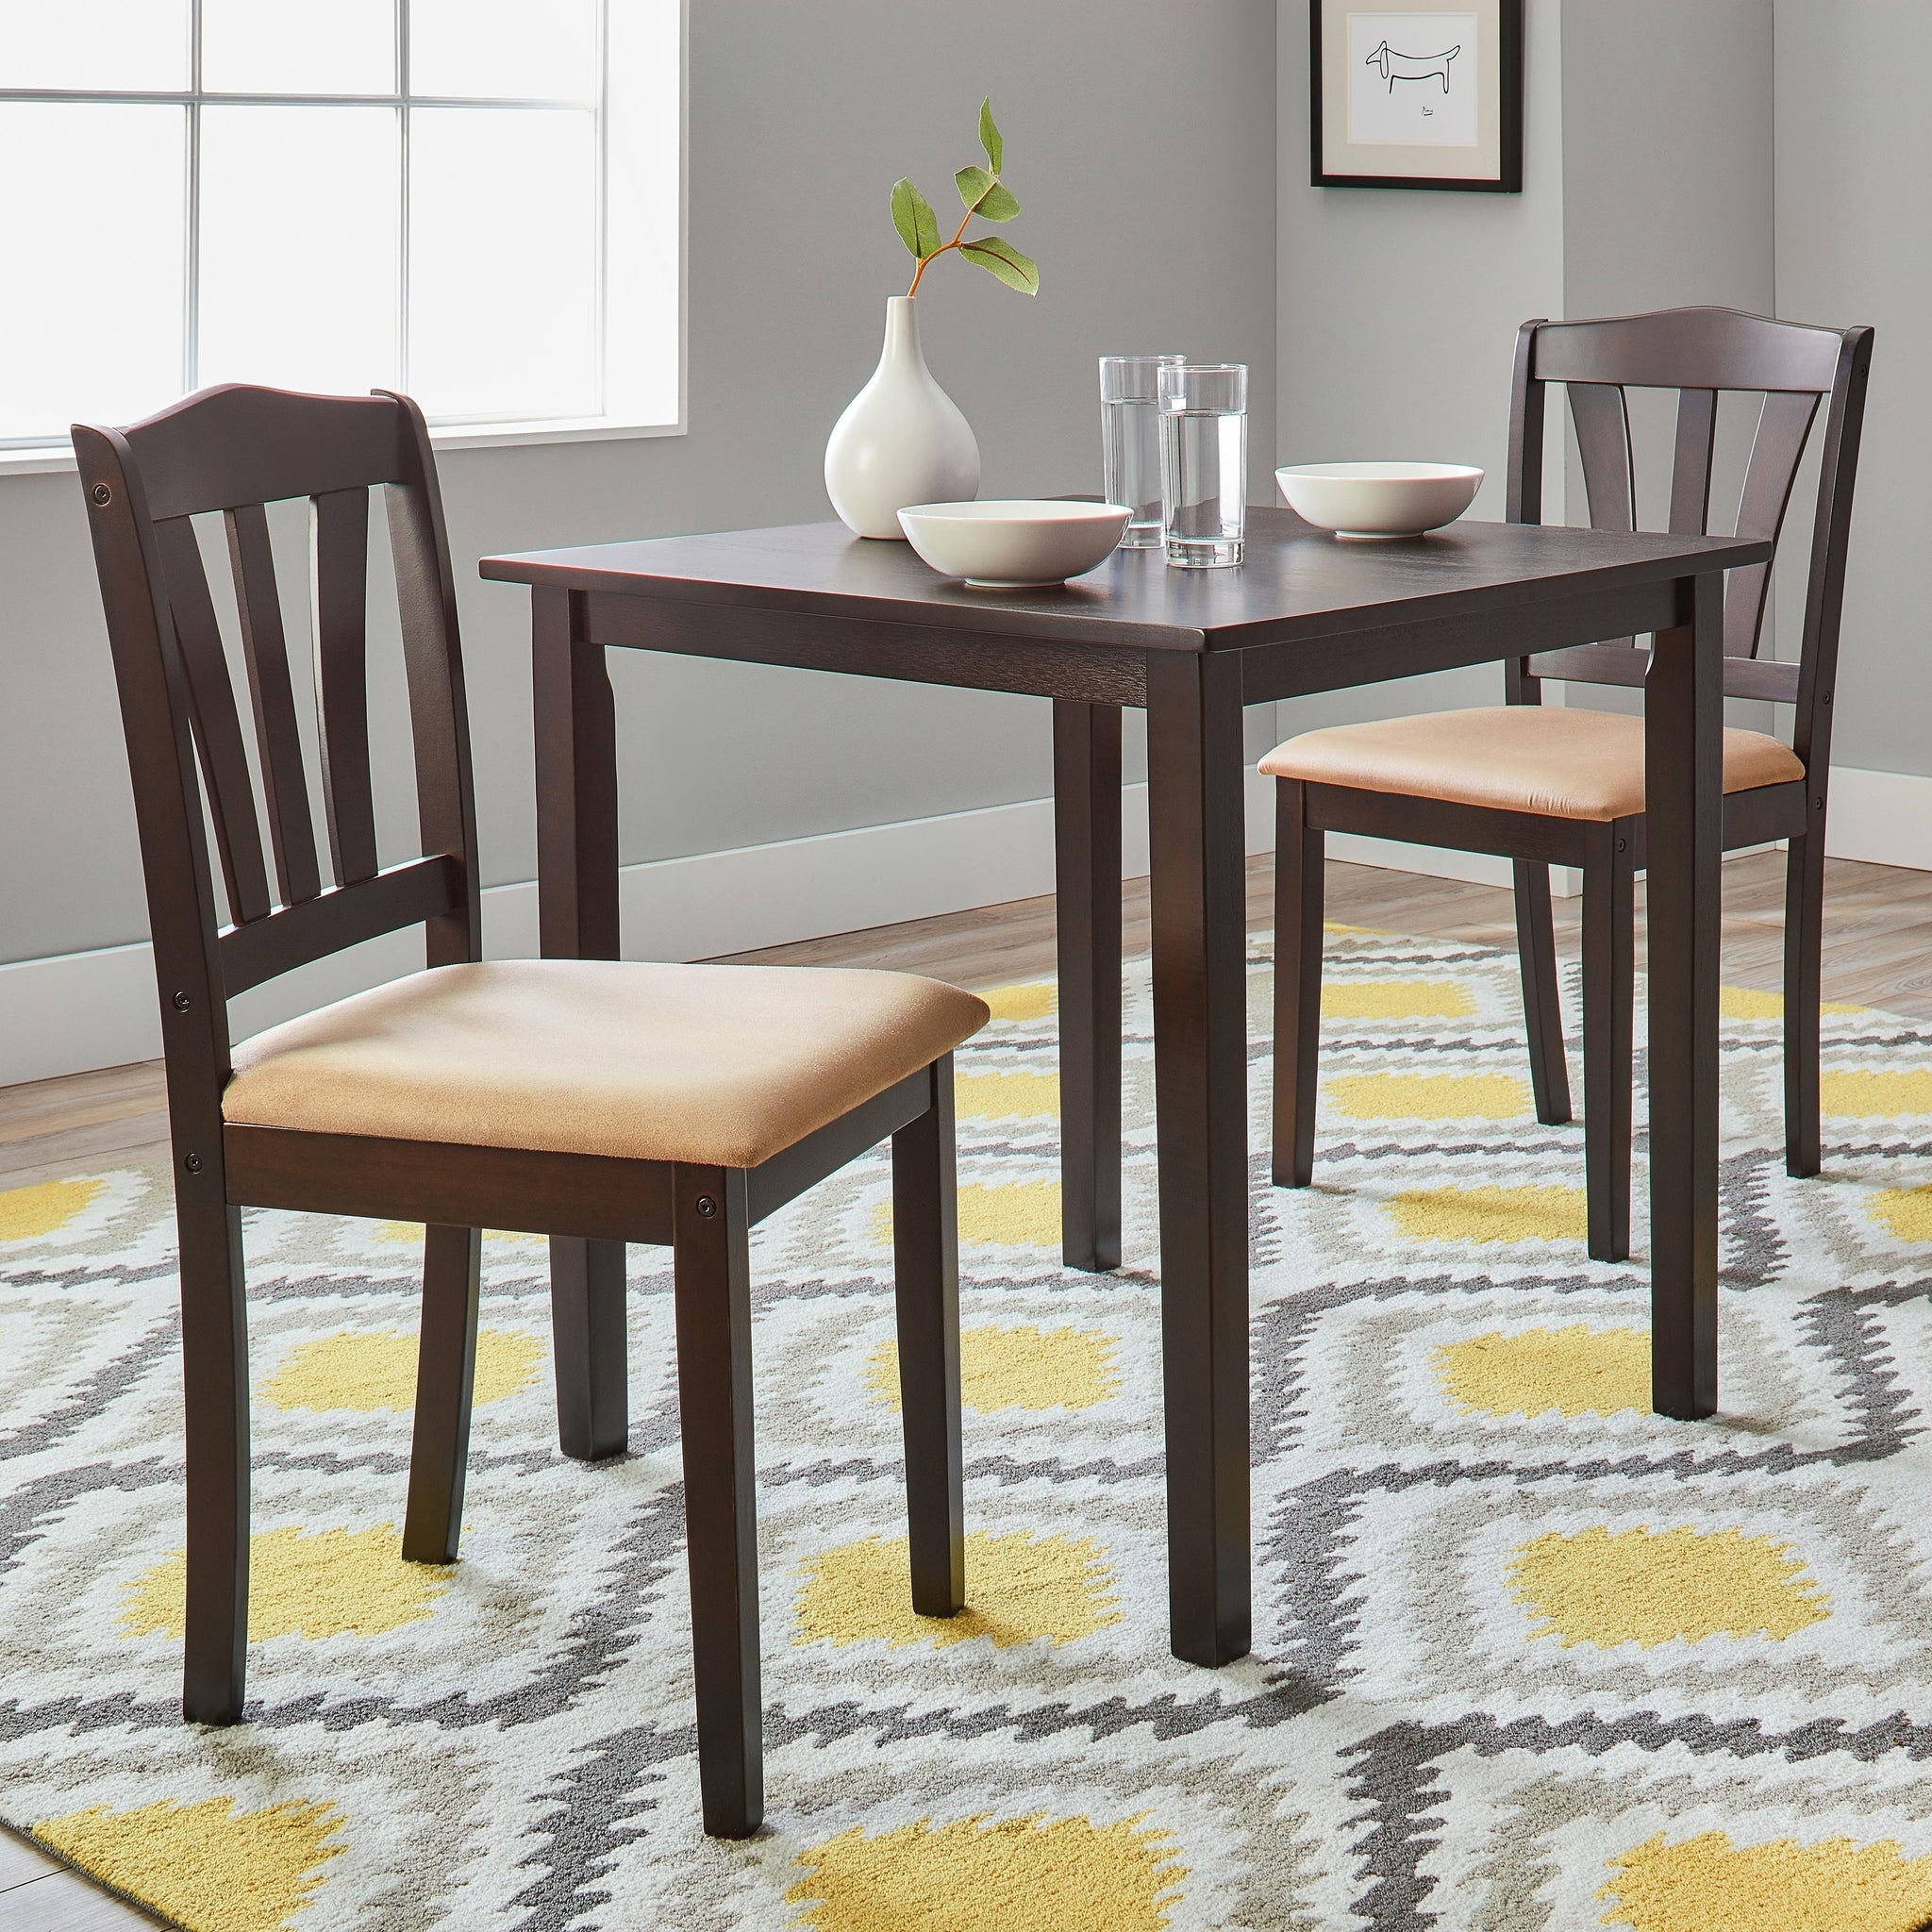 Three-Piece Dining Set with Microsuede Seats